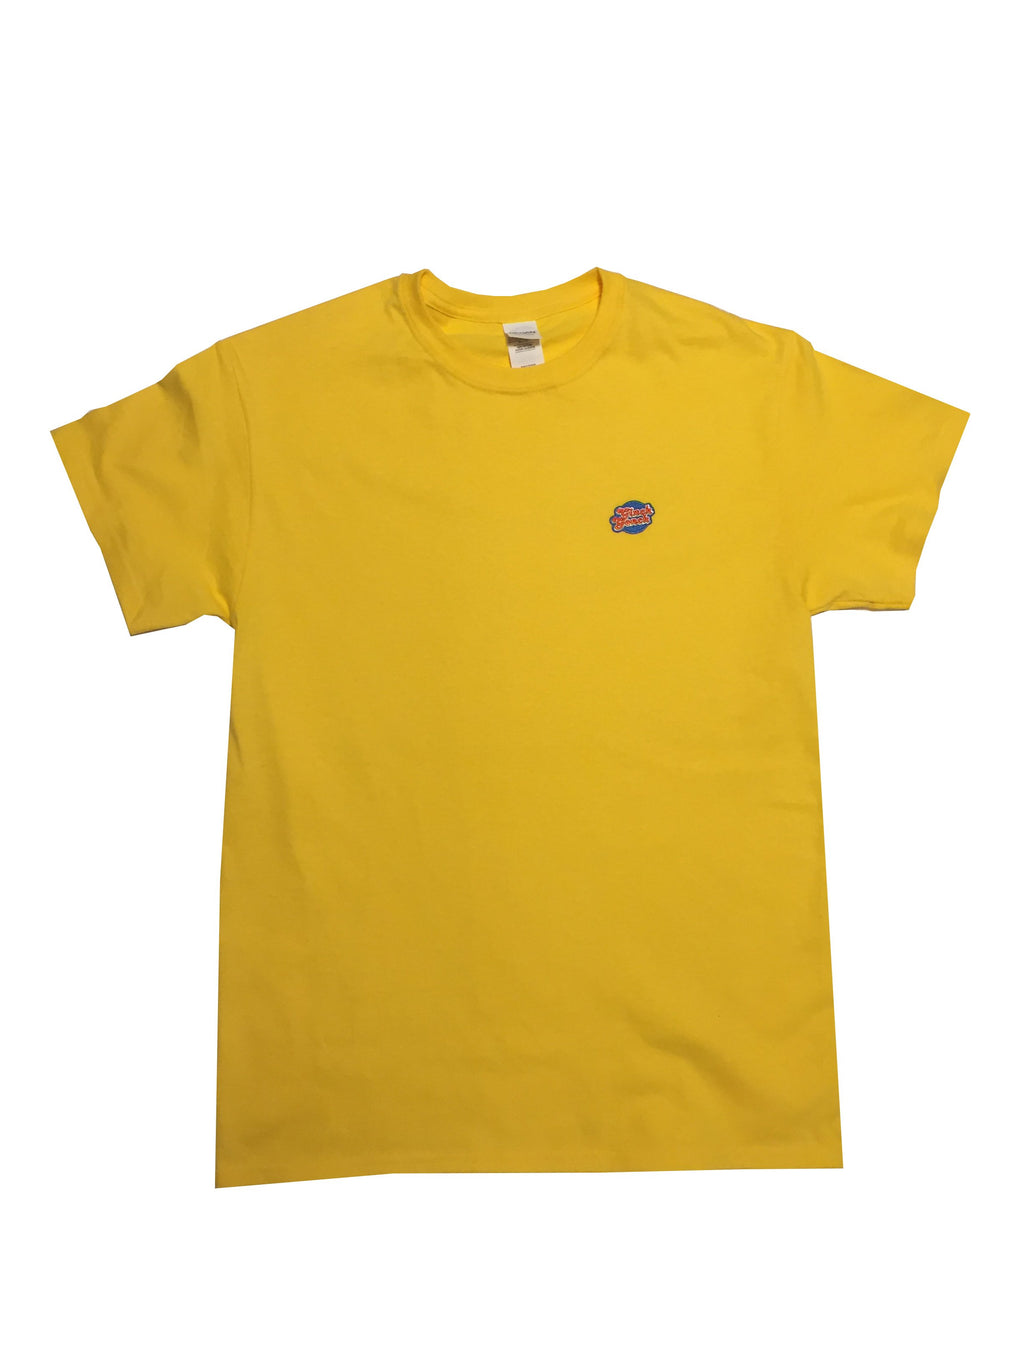 GG Yellow T-Shirt with Full Logo (Men & Women)